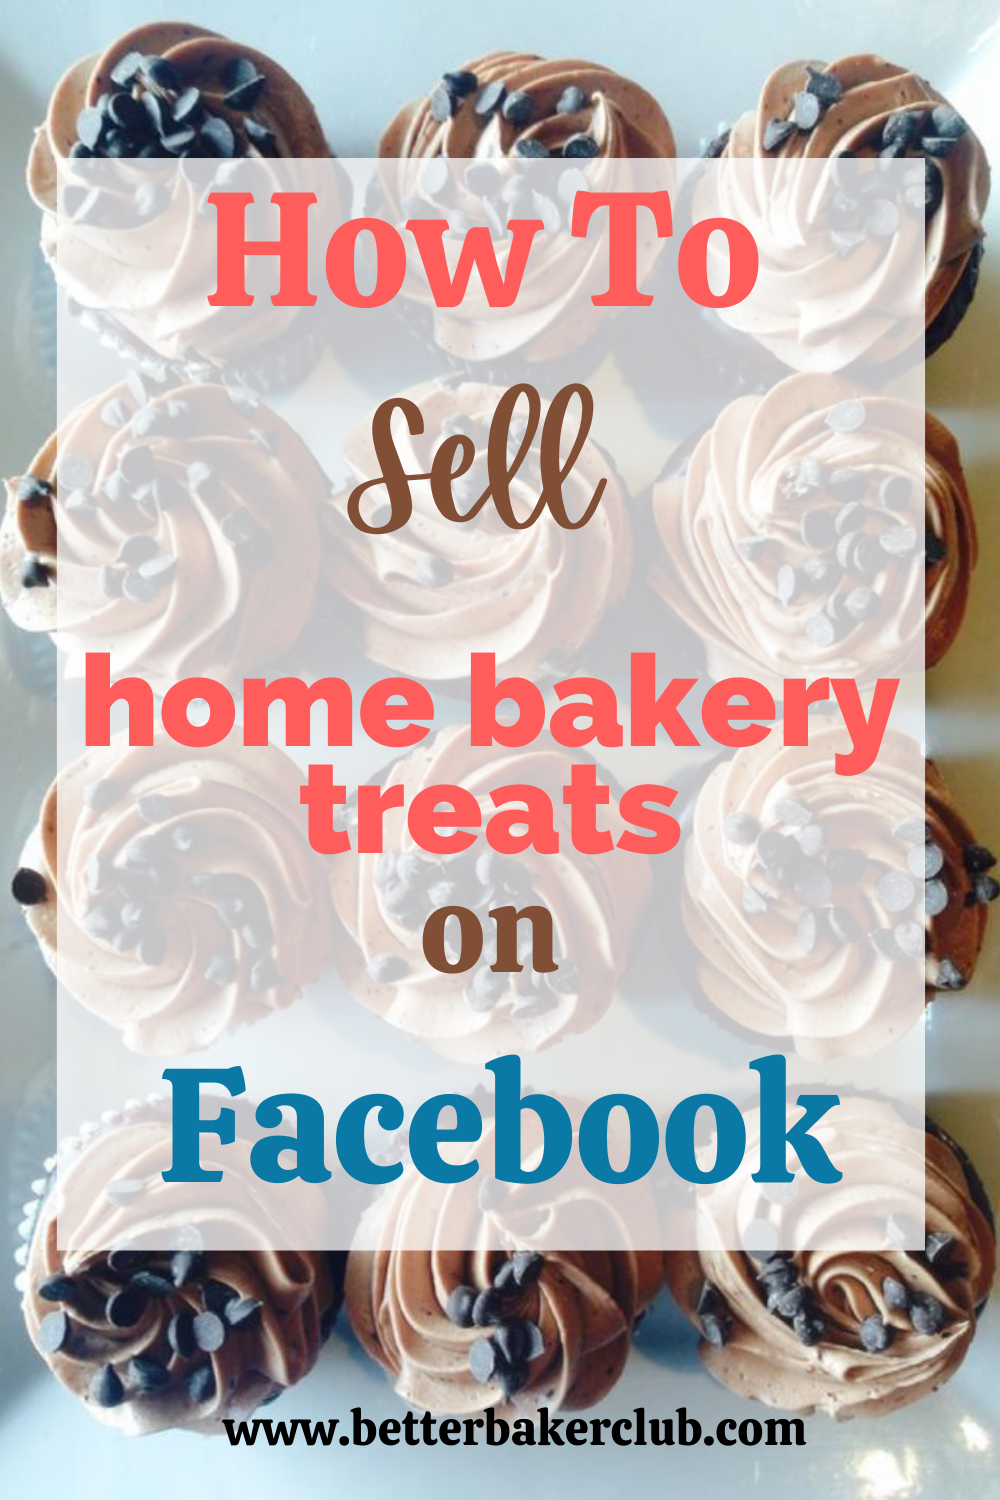 Selling home baked goods on Facebook promotional image by baking expert Allyson Grant